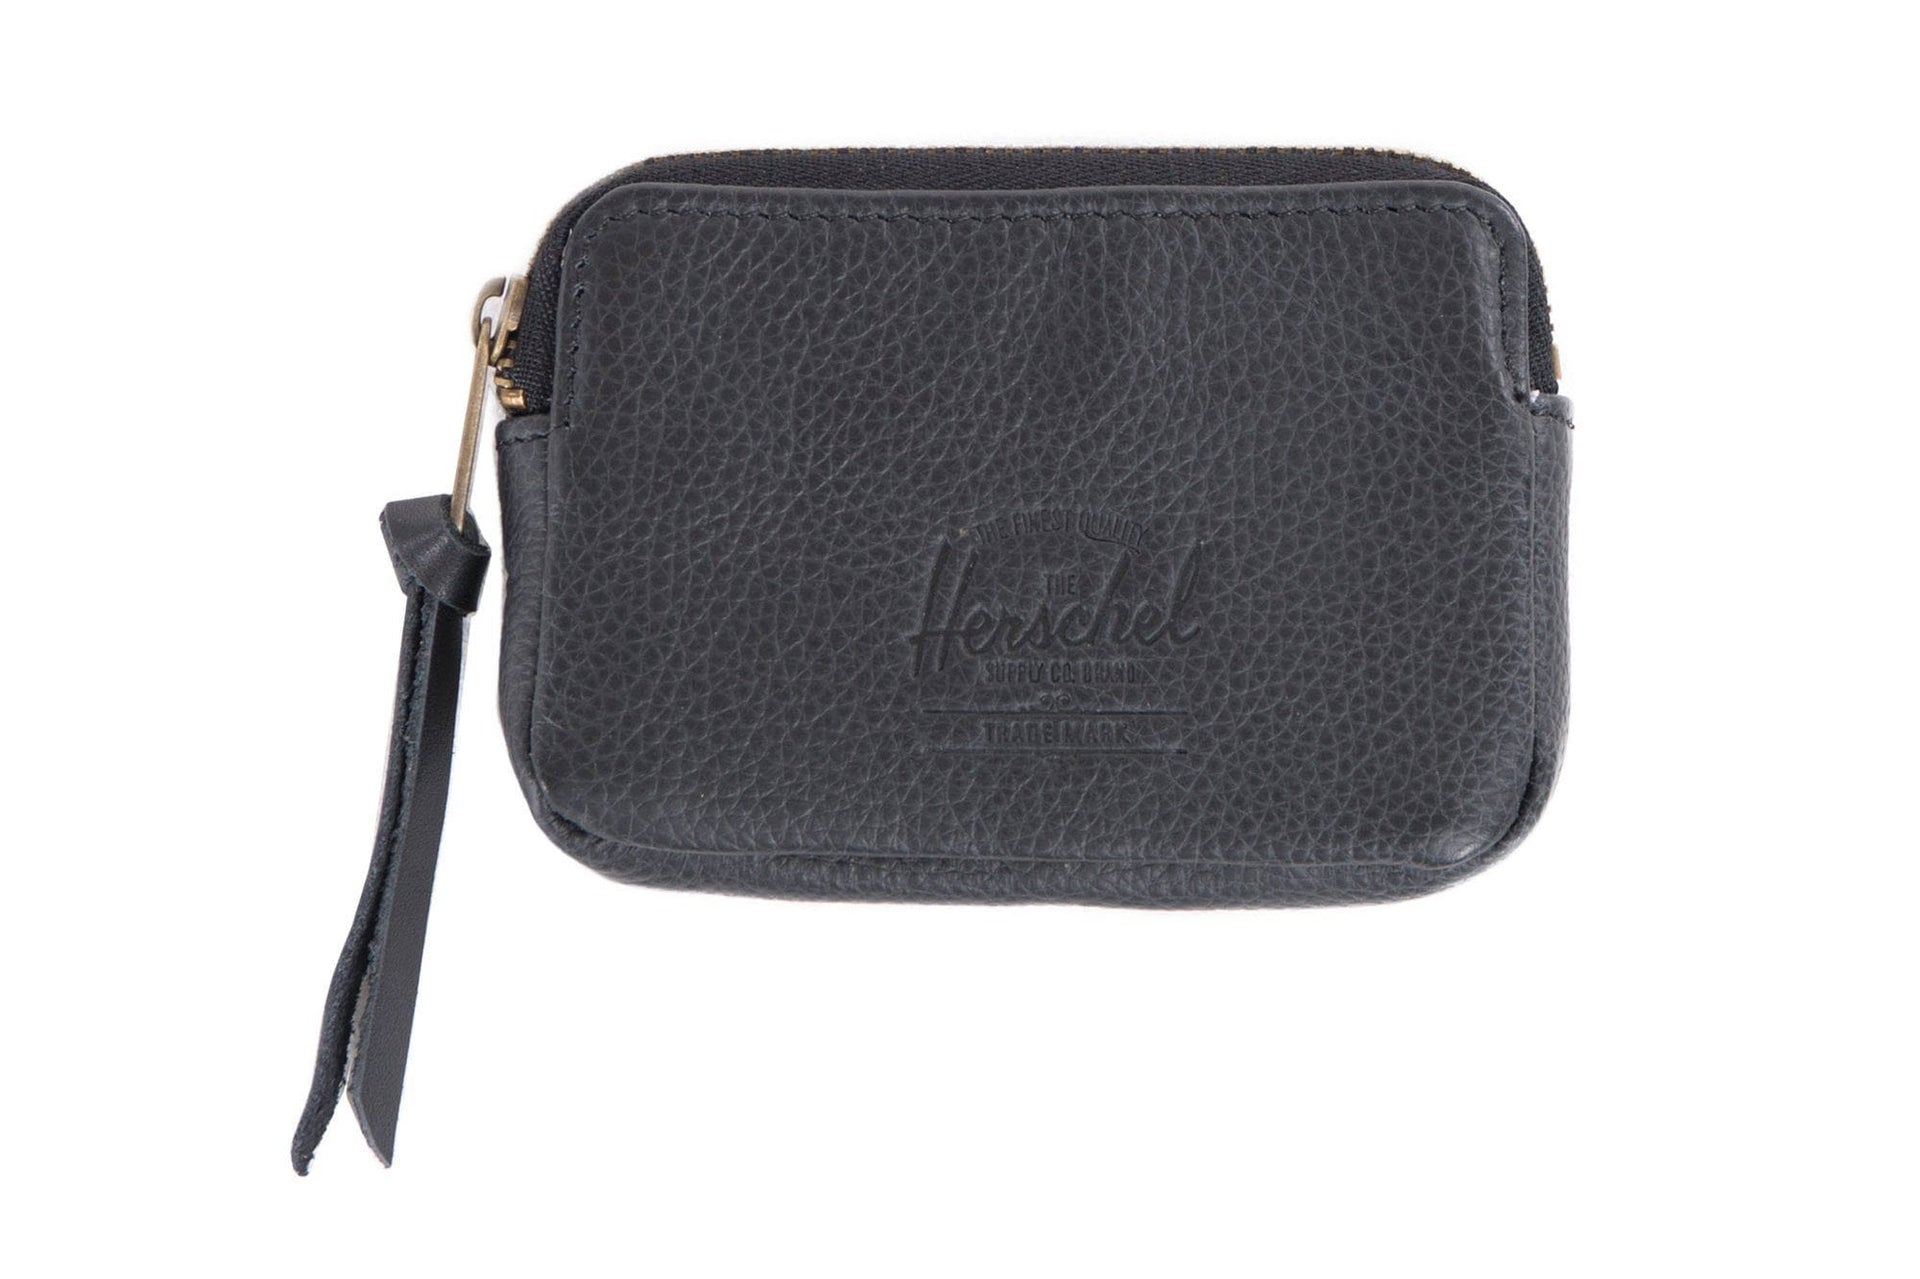 OXFORD POUCH LEATHER ACCESSORIES HERSCHEL BLACK PEBBLE ONE SIZE